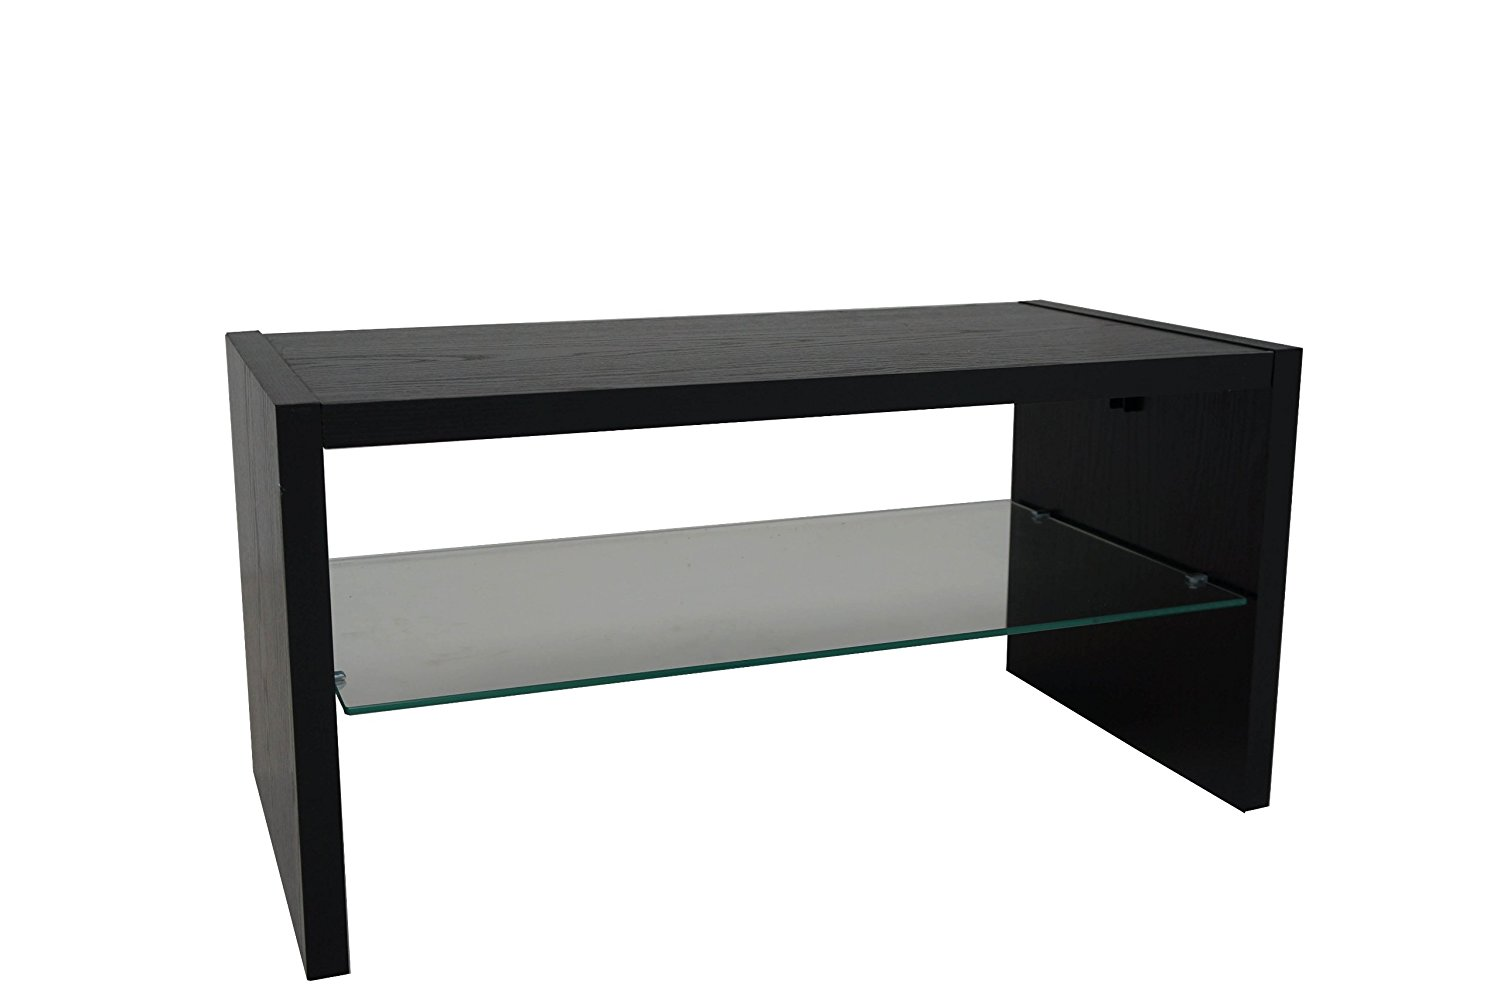 madison ash effect coffee table 40cm x 40cm x 80cm 2